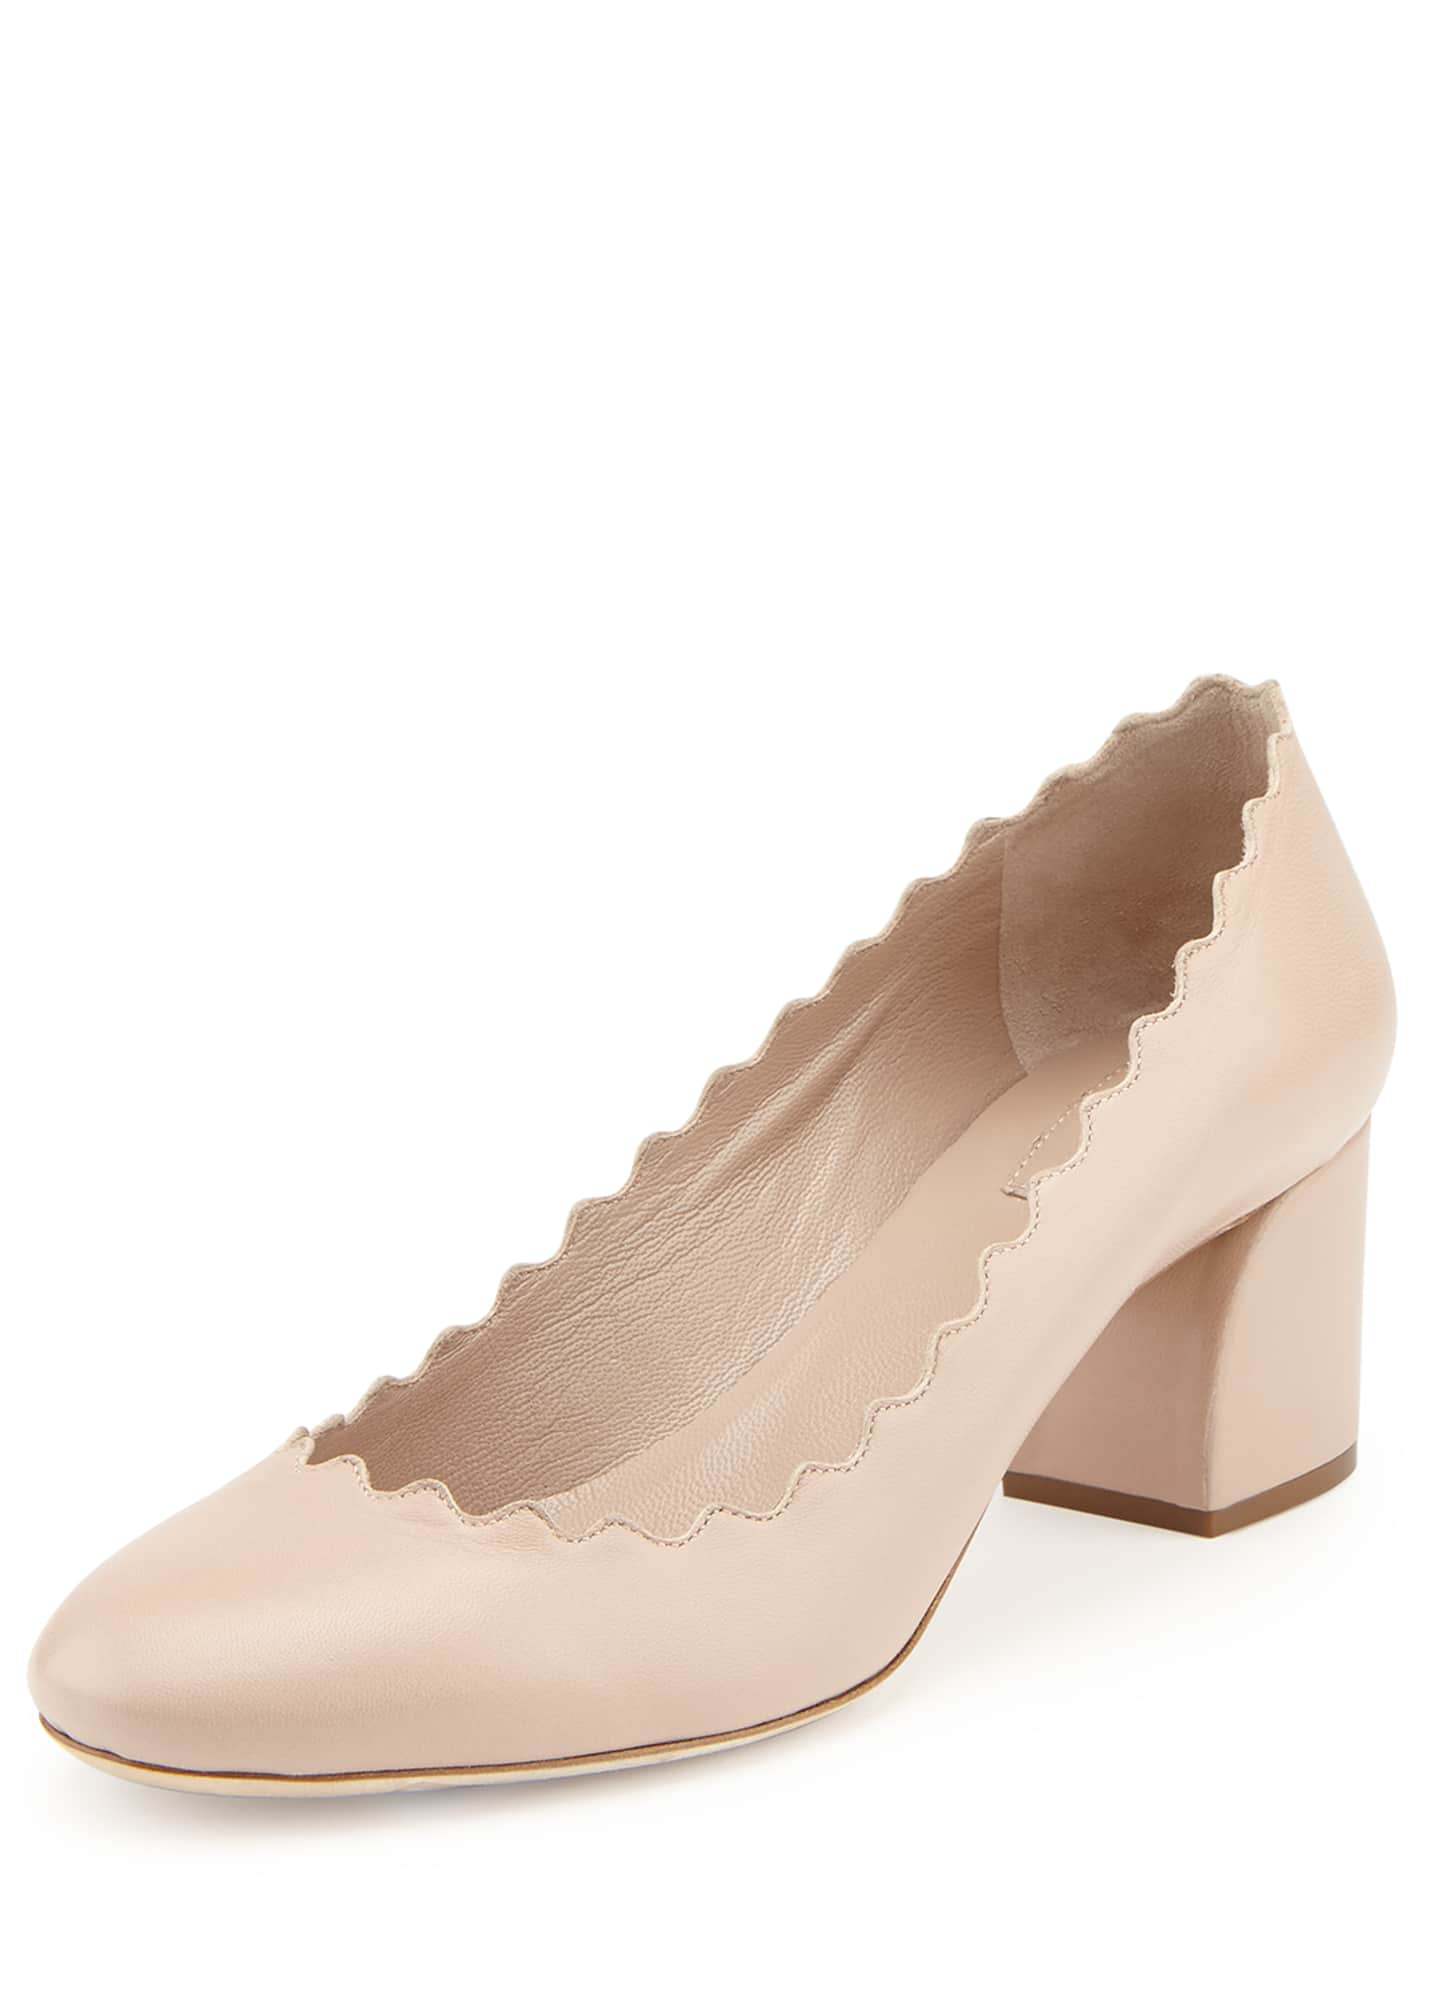 Image 1 of 1: Scalloped Leather Pumps, Light Pink